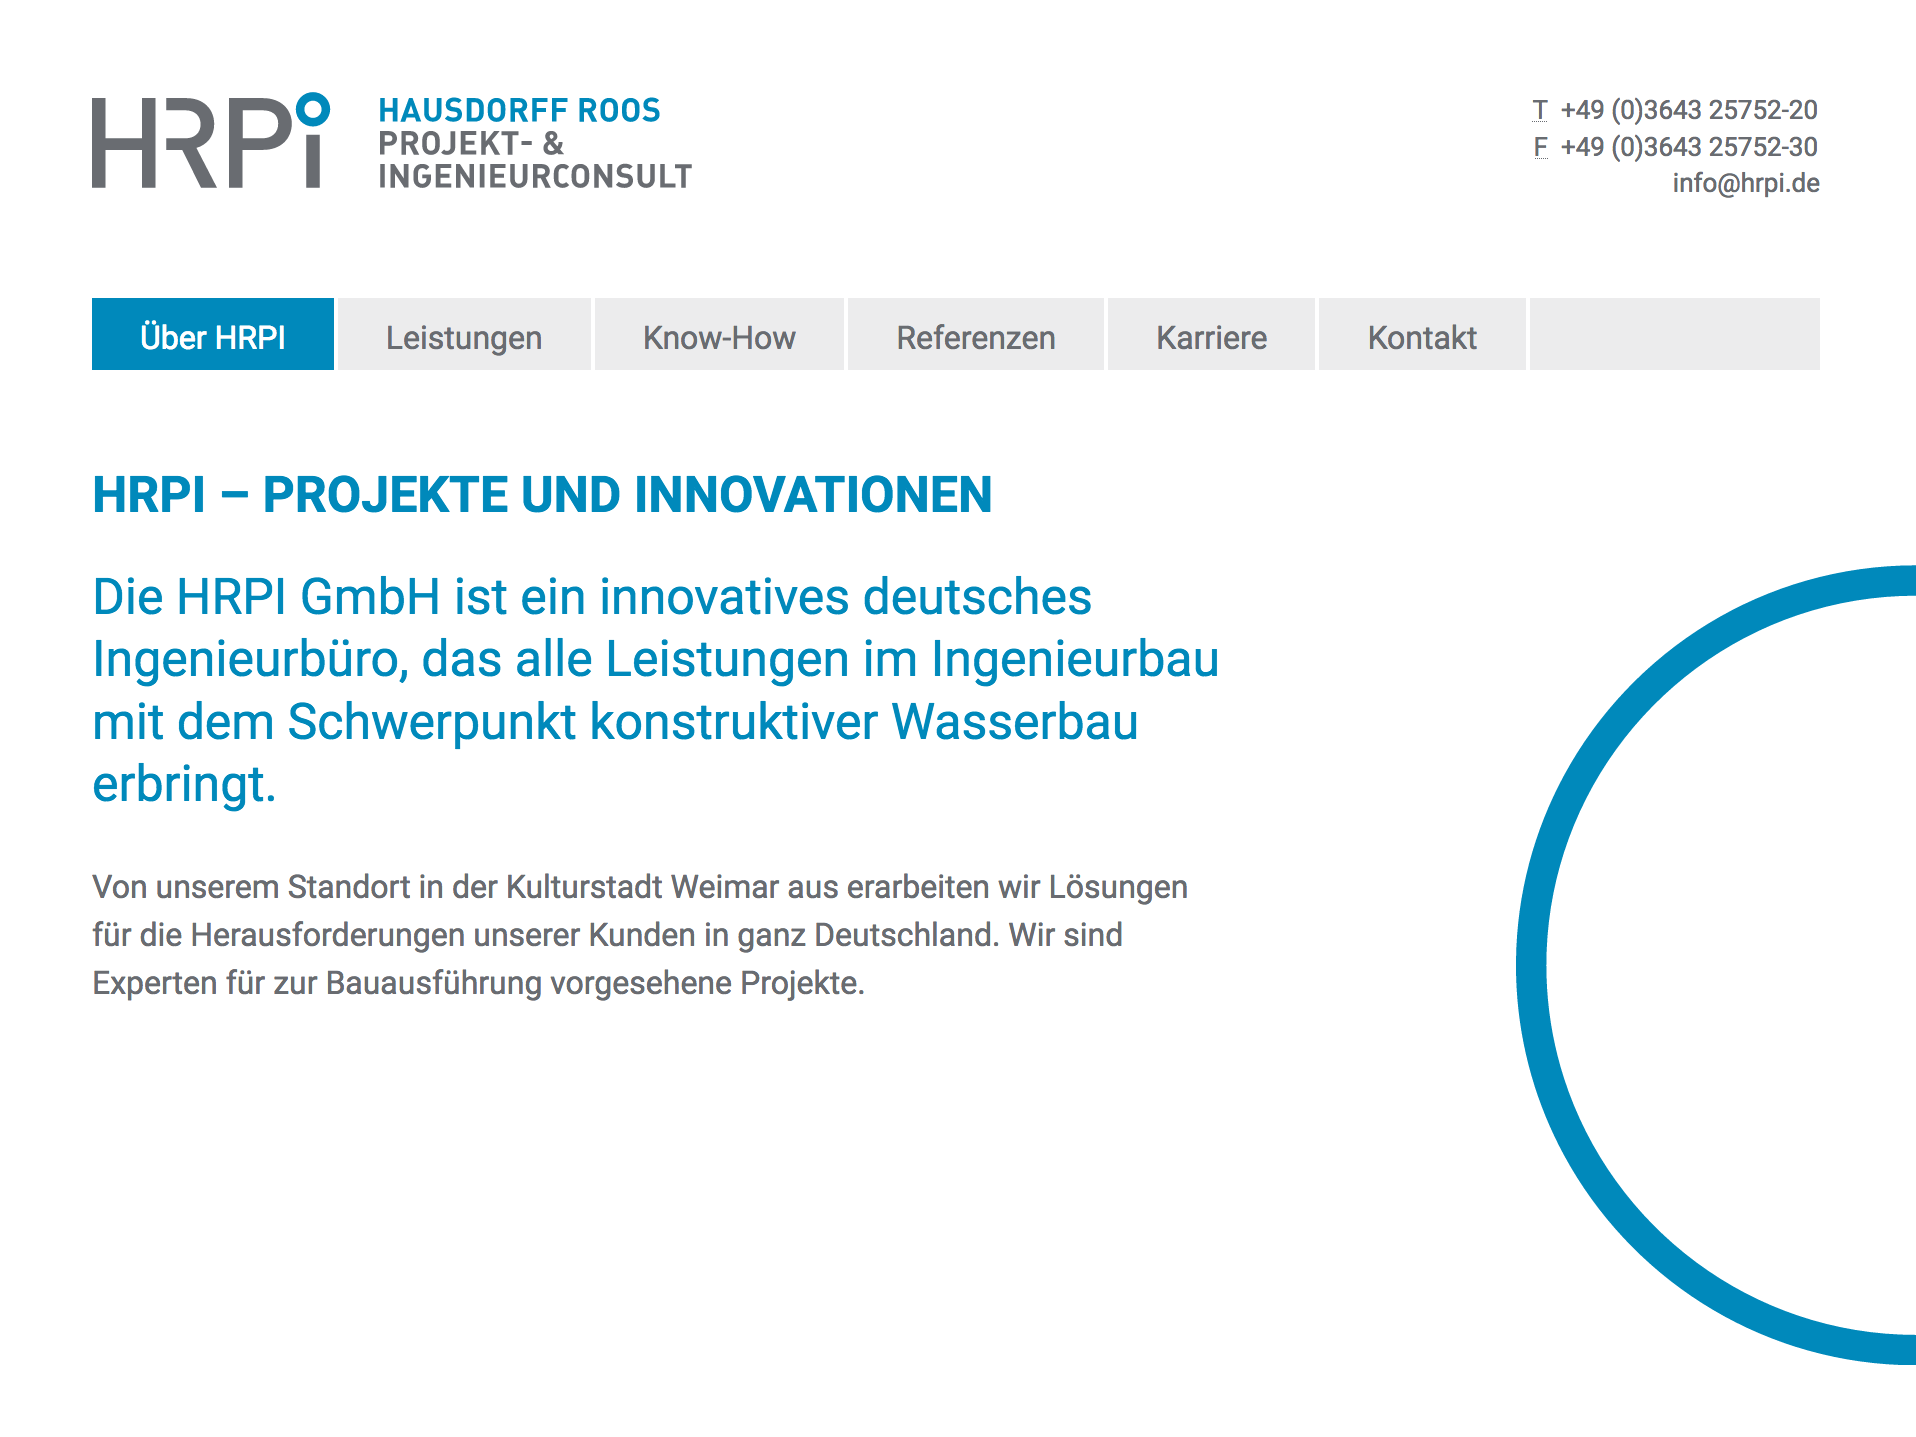 Website hrpi.de